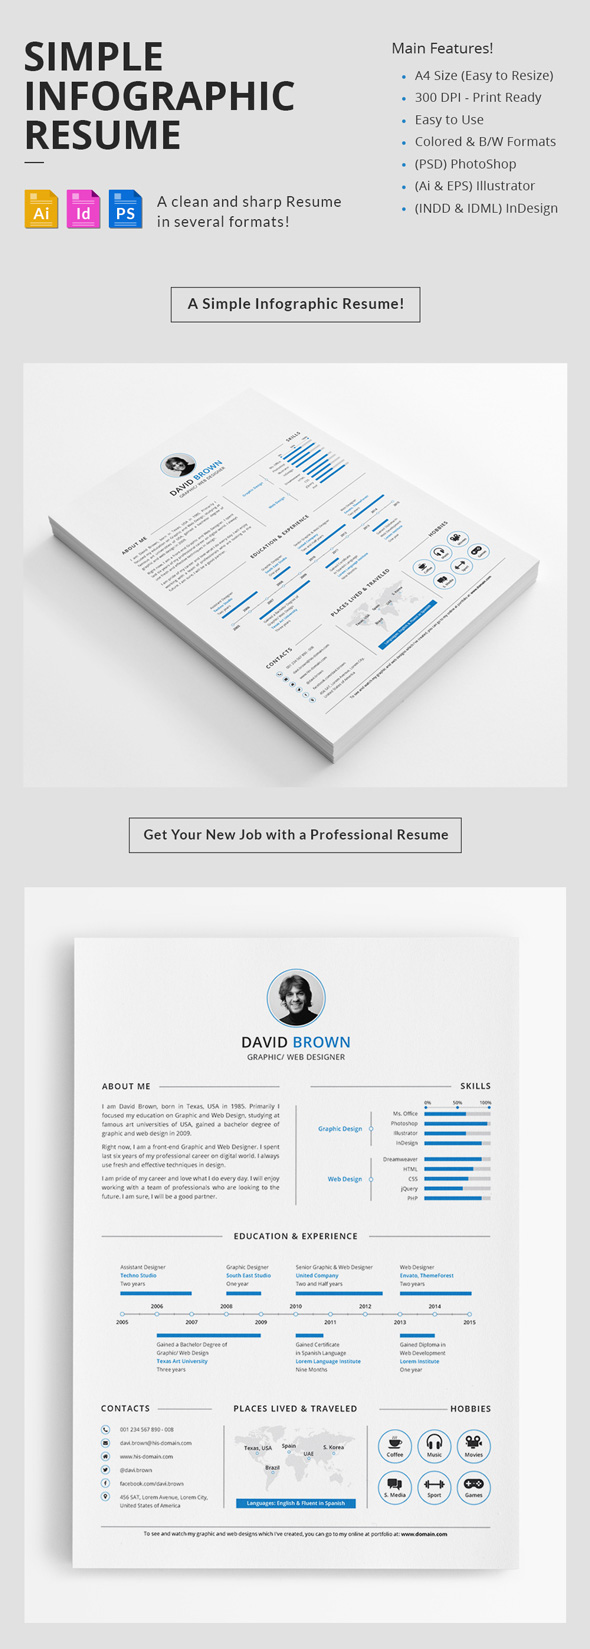 Creative Infographic Resume Templates For